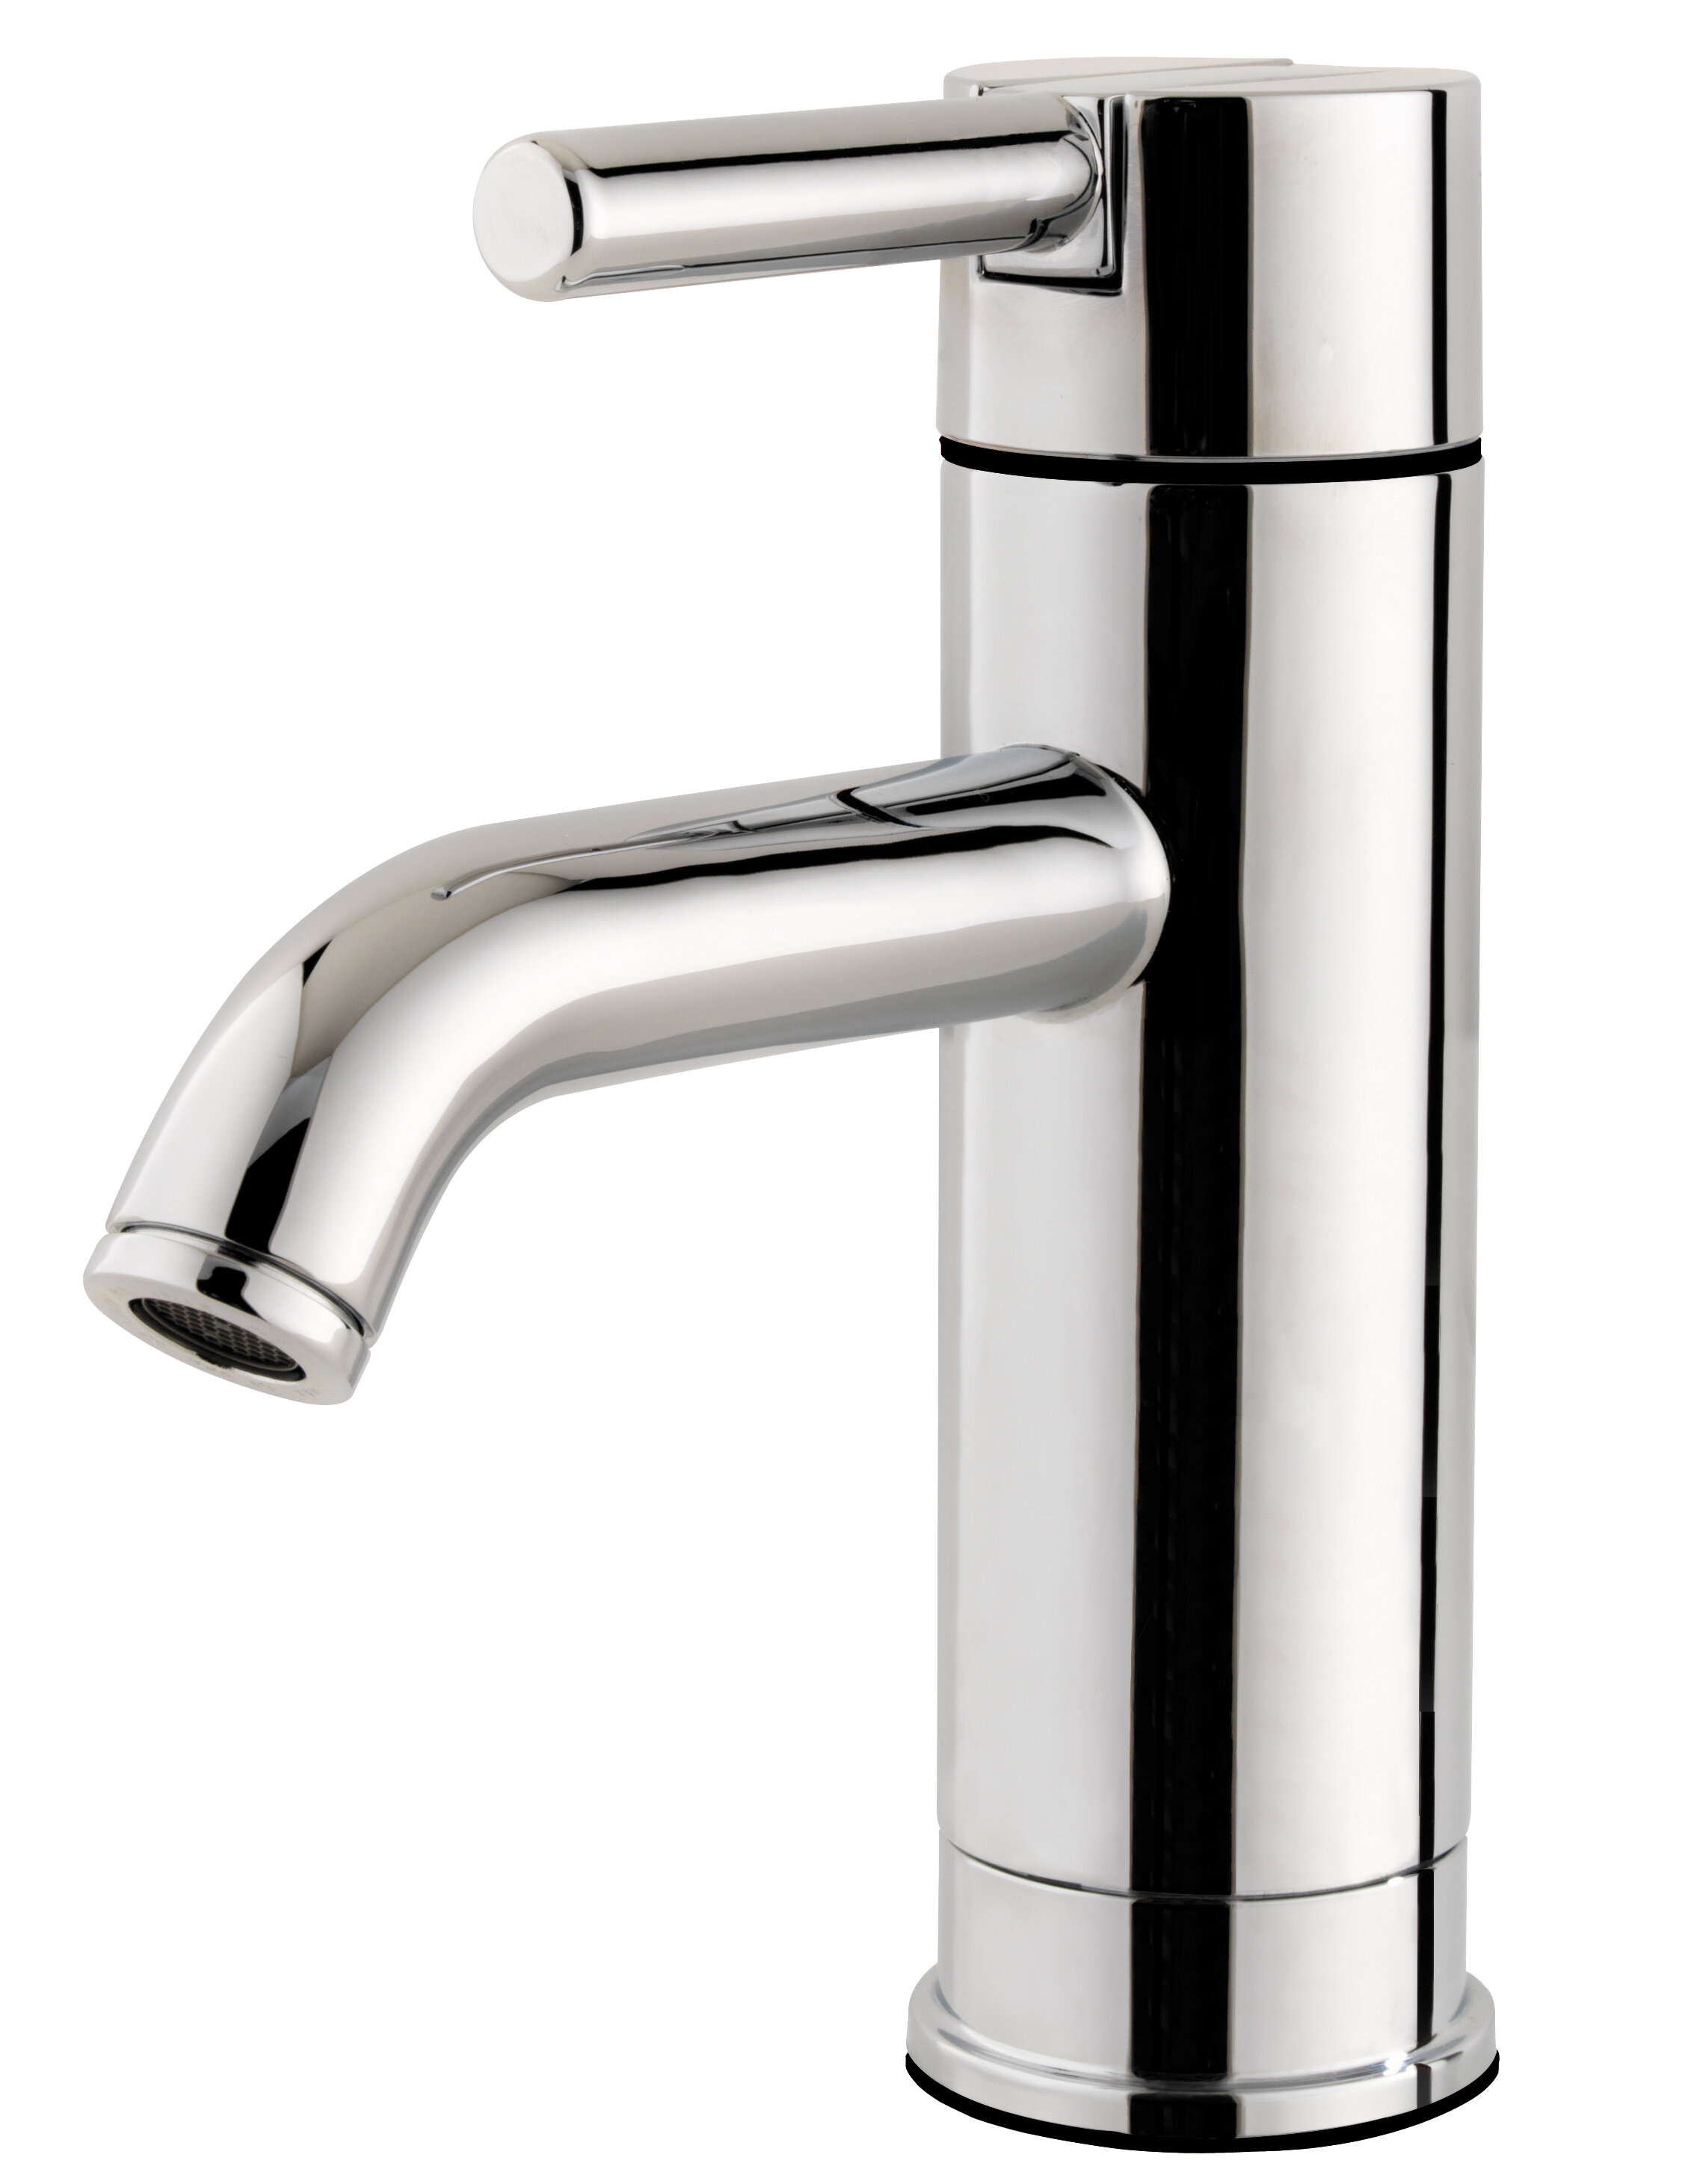 Pfister Contempra Joystick Centerset Standard Bathroom Faucet with ...